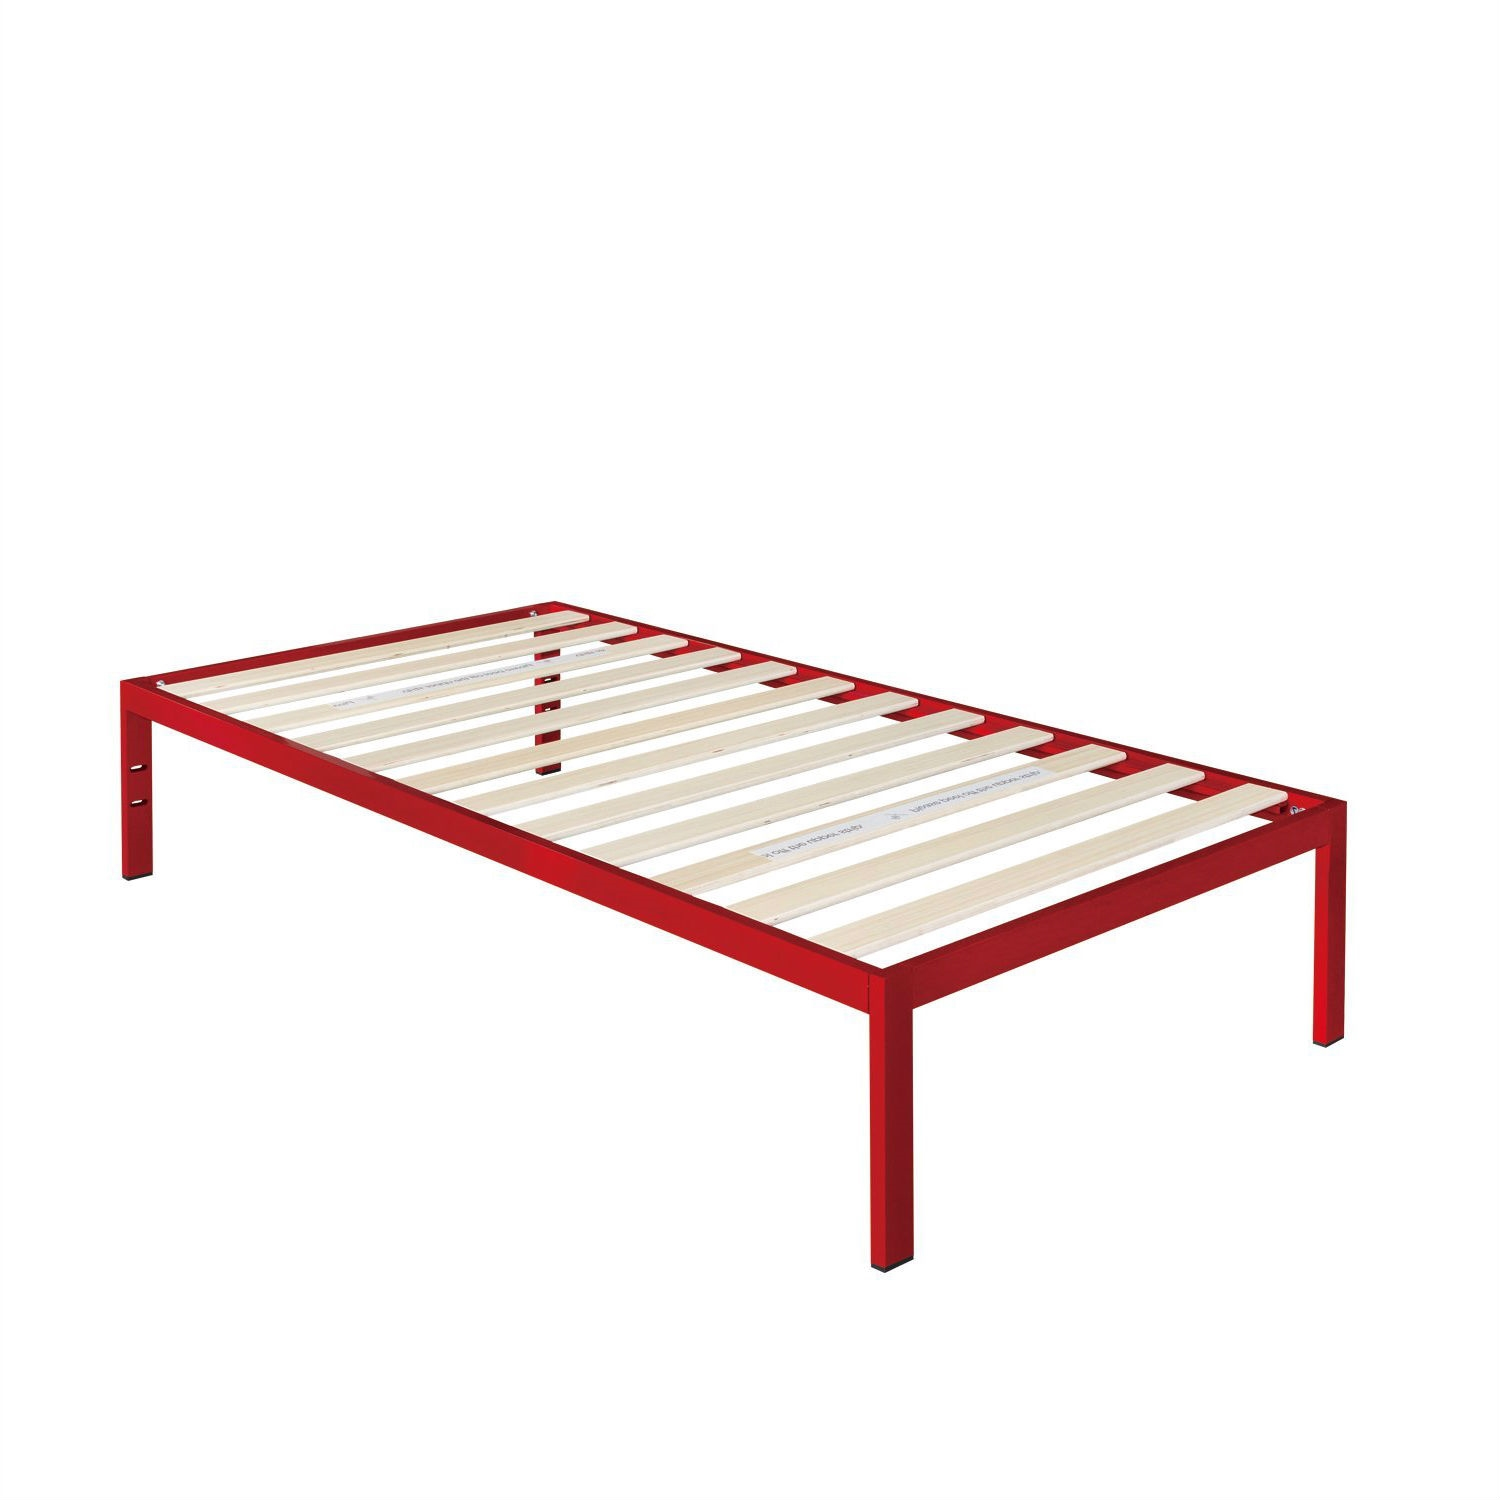 Twin size Modern Red Metal Platform Bed Frame with Wood Slats ...